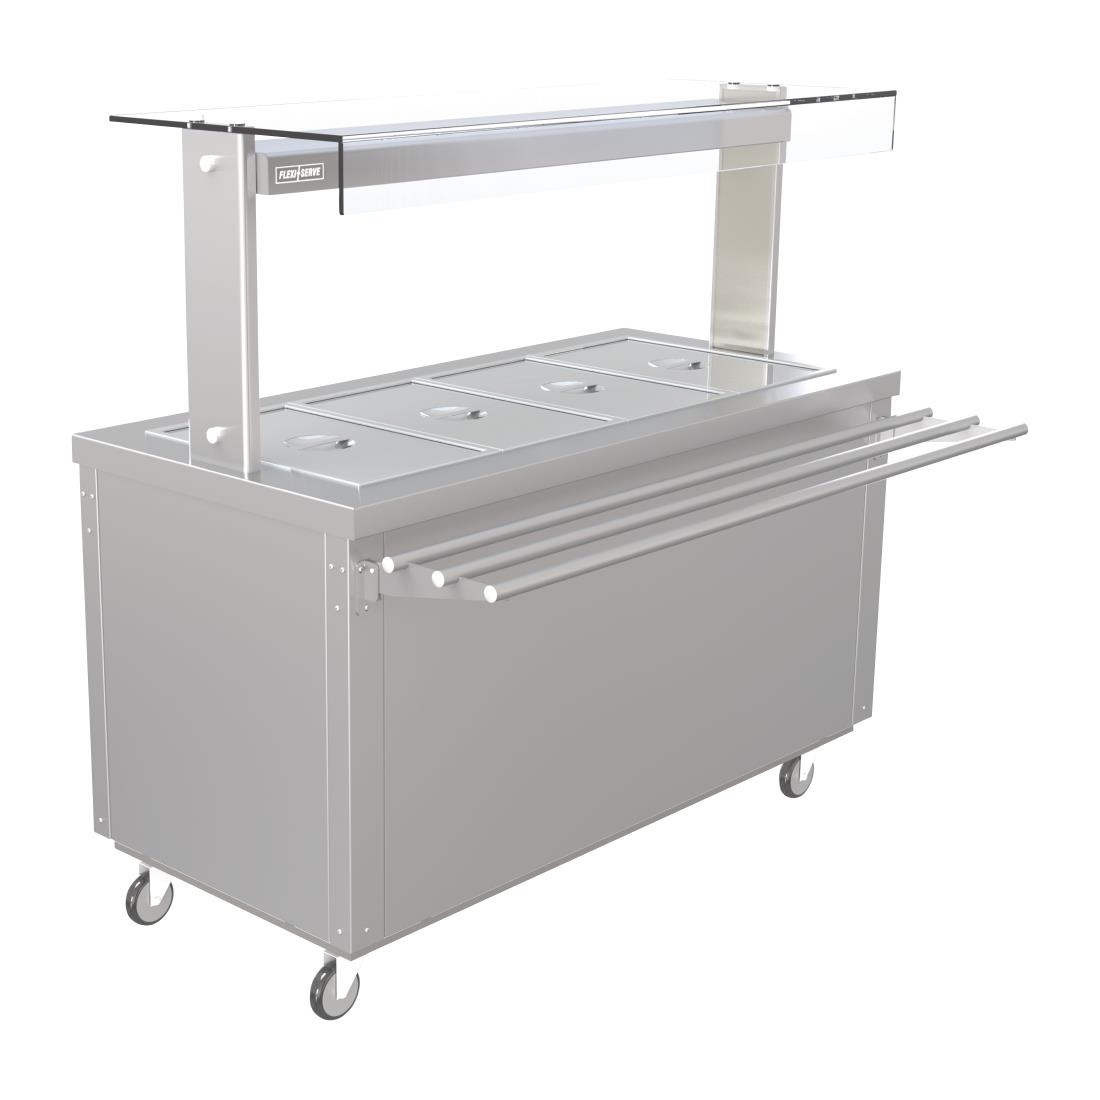 Image of Parry Hot Cupboard with Heated Bain Marie 1495mm FS-HB4PACK